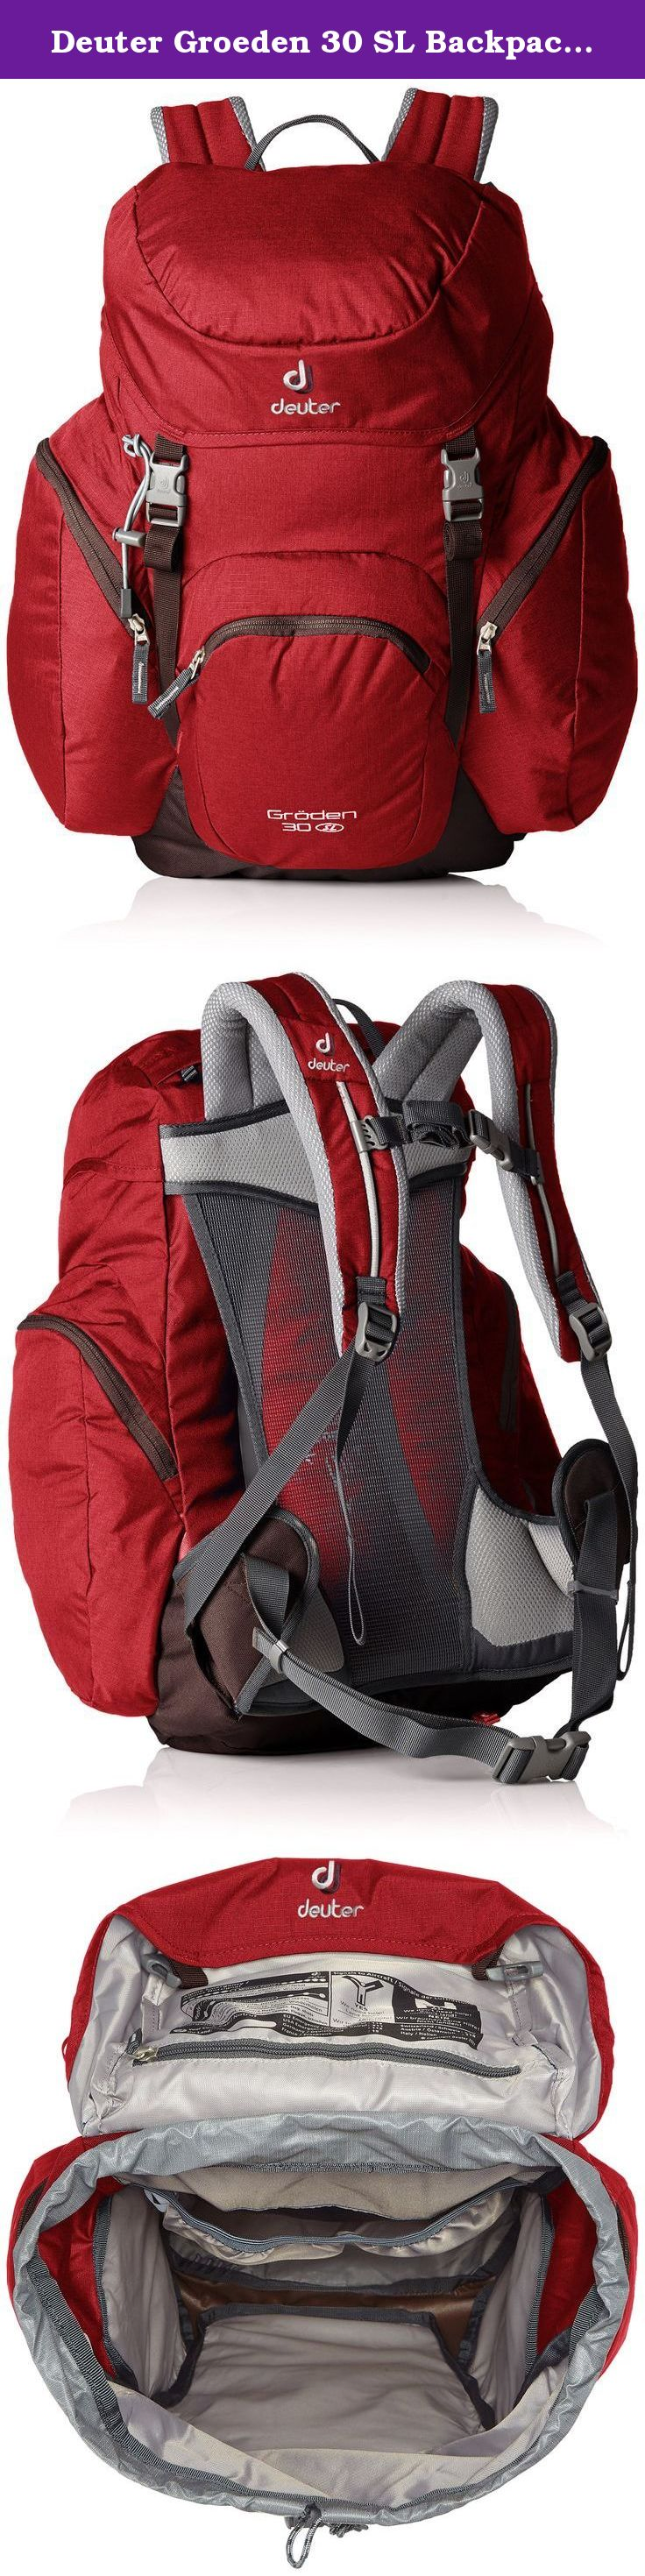 8966f52ca4406 Deuter Groeden 30 SL Backpack - Cranberry Aubergine. The renaissance of a  classic!